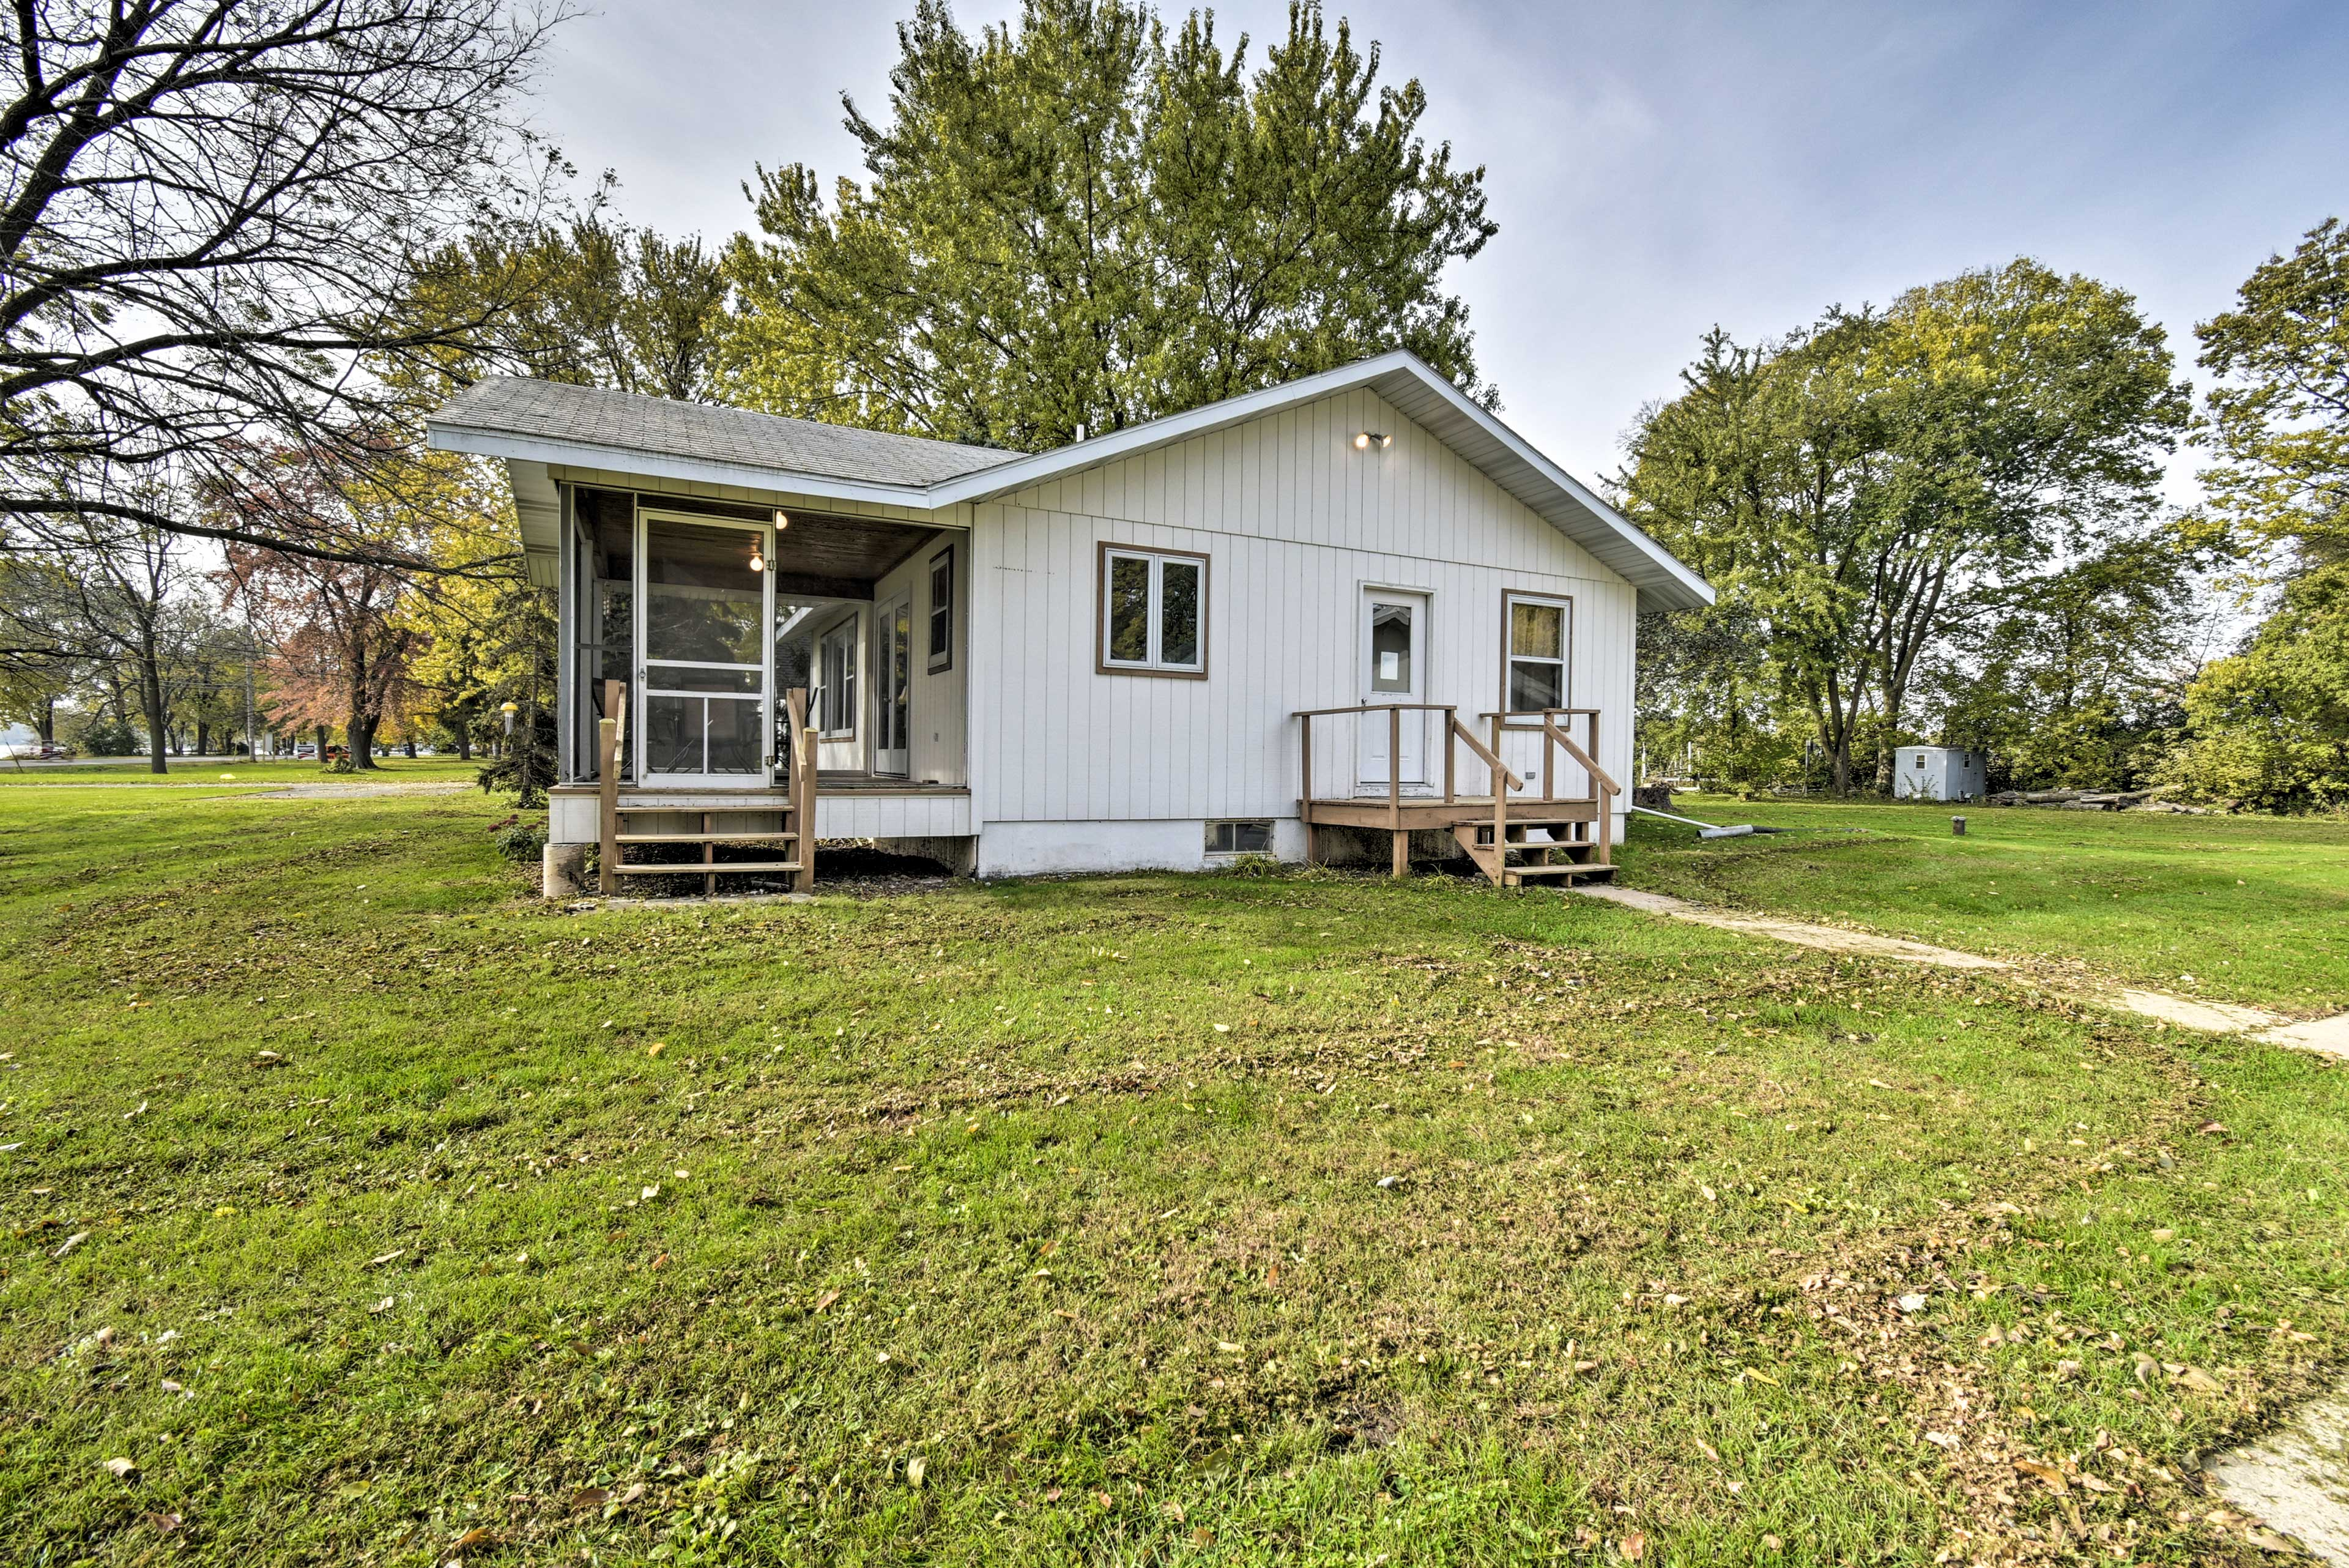 You'll love the large grass yard surrounding the property.